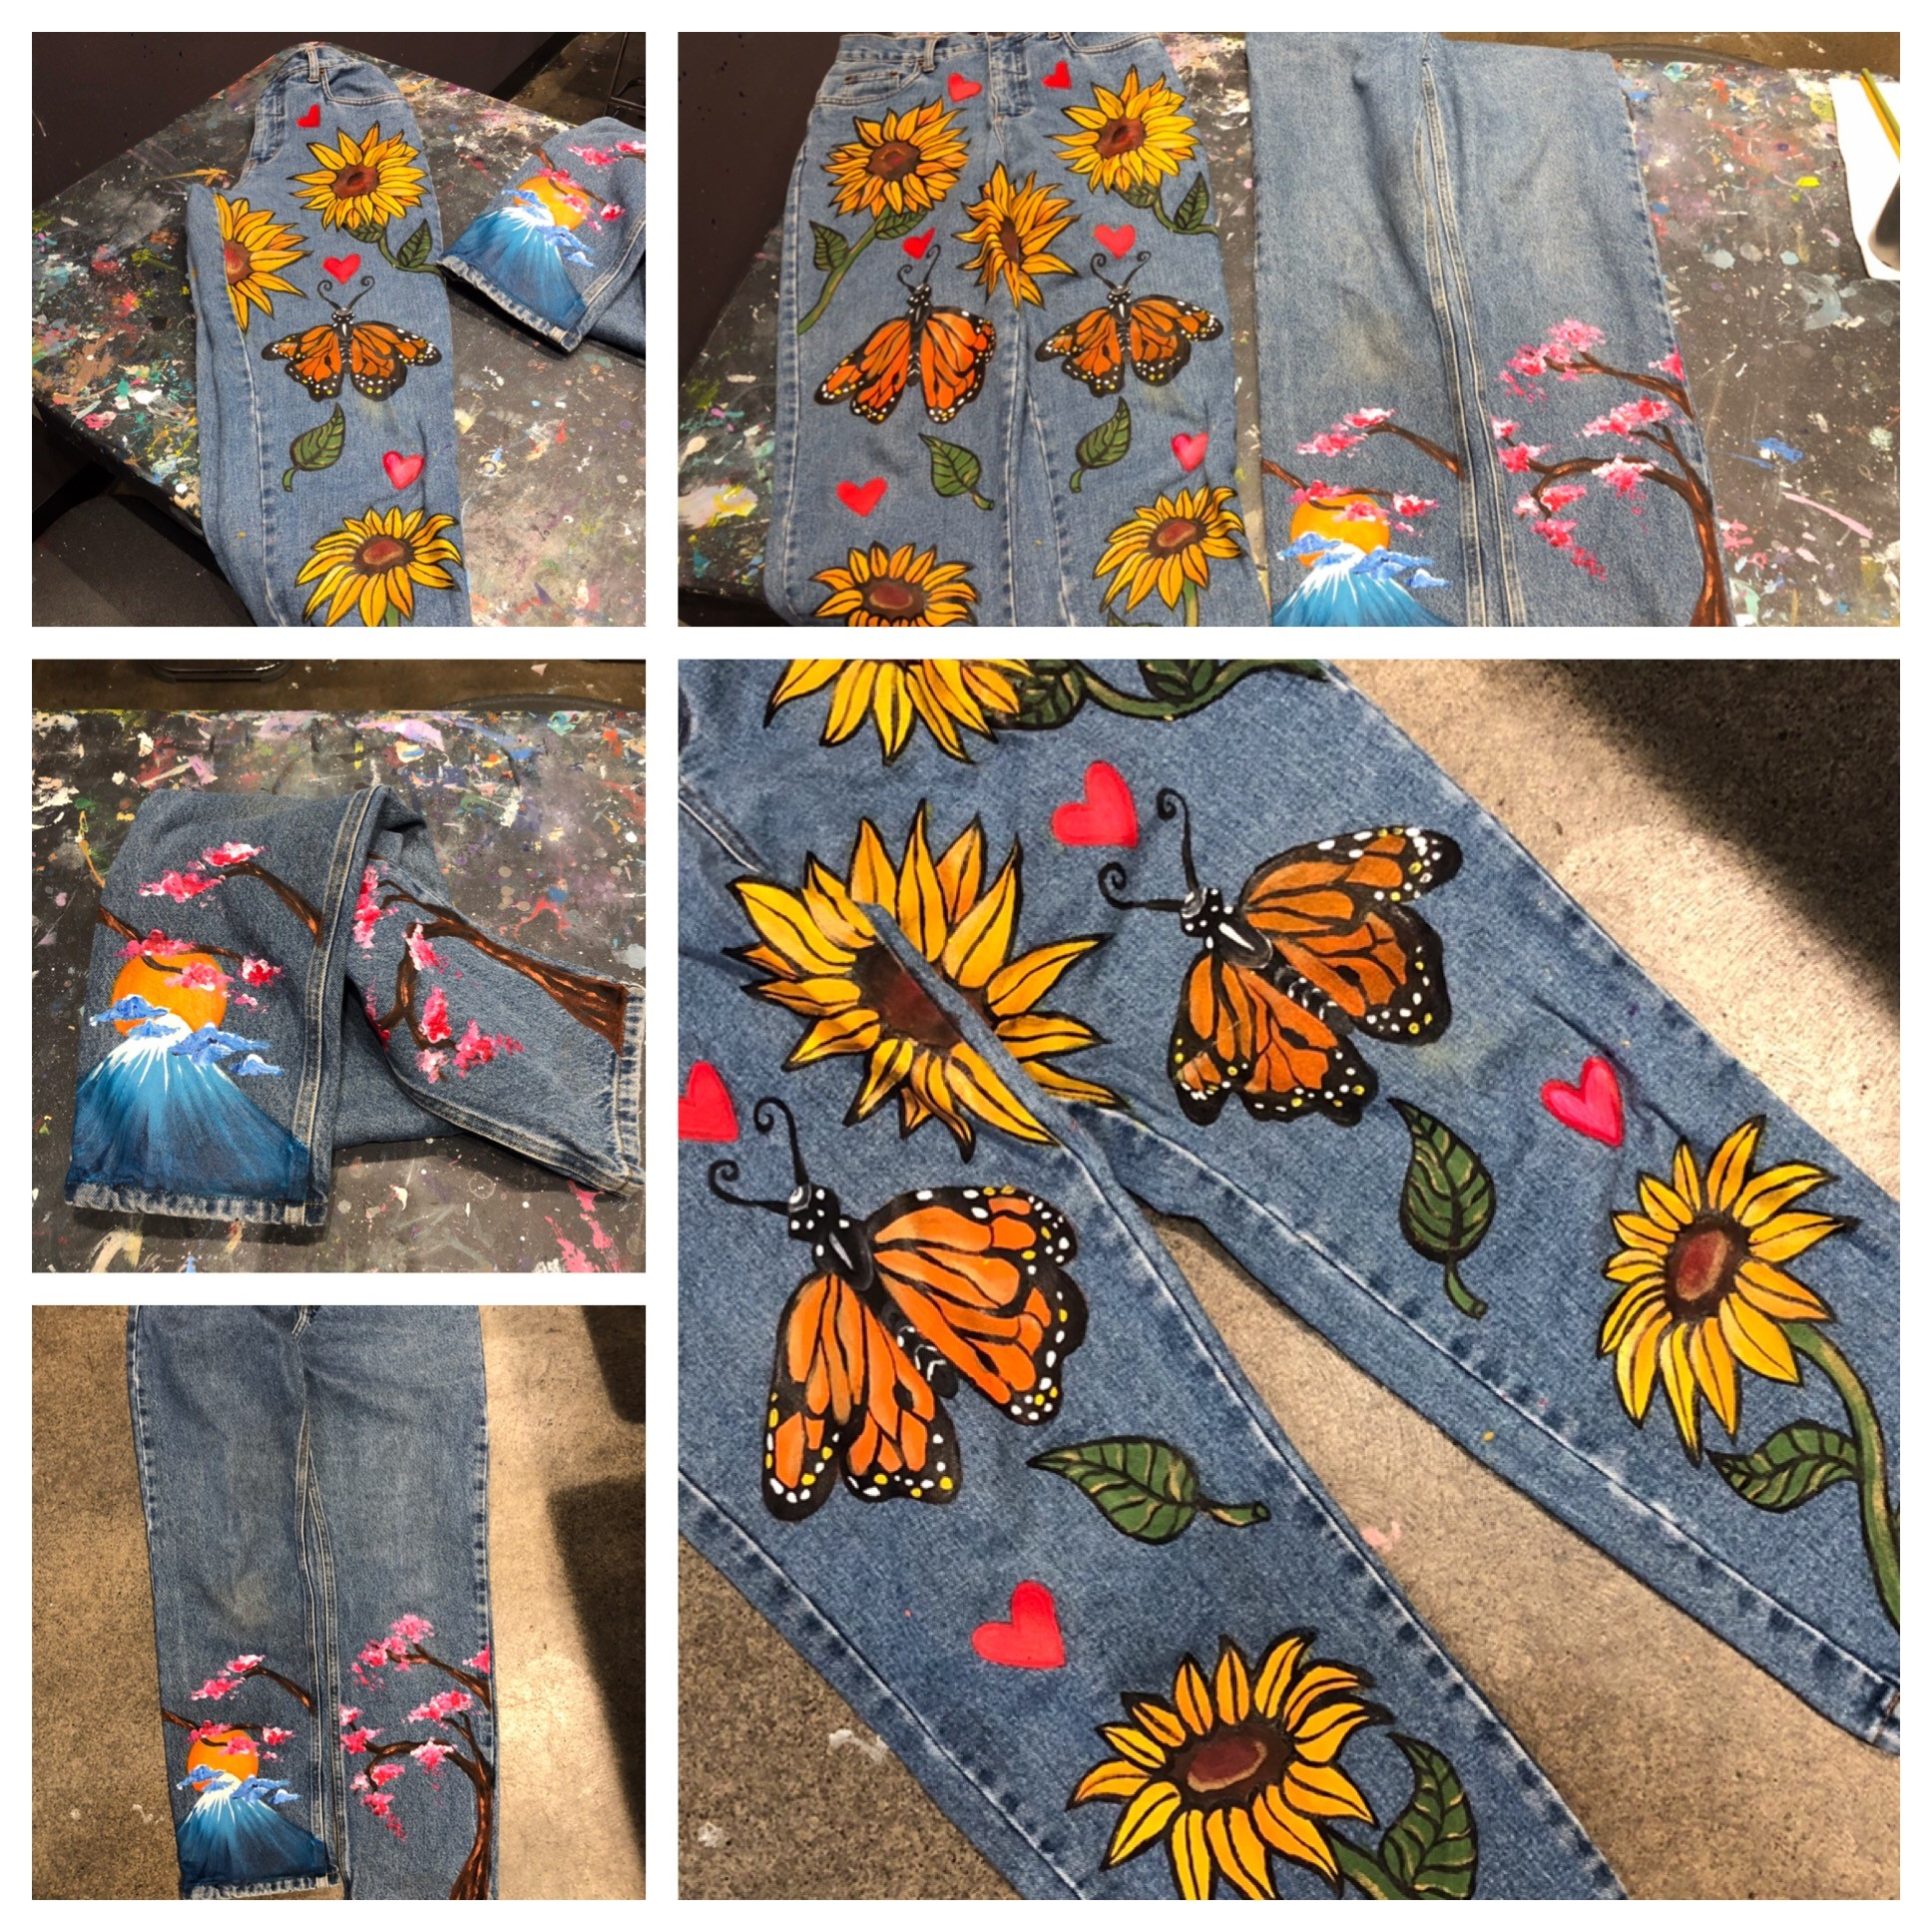 Painted Jeans Classes!!